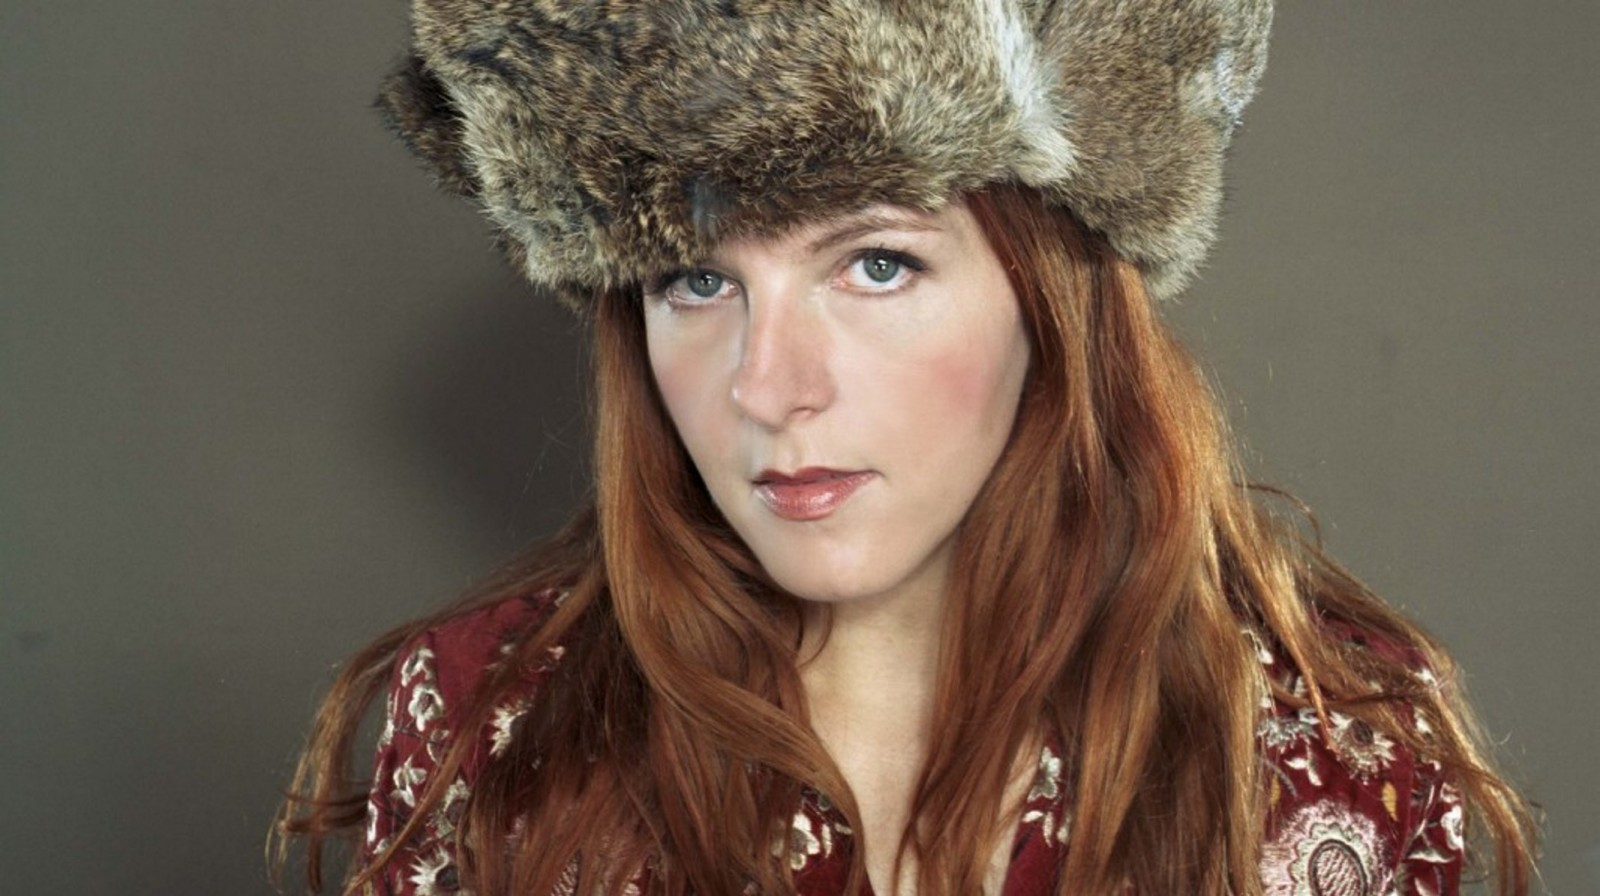 Neko Case will play Asbury Hall on February 27.